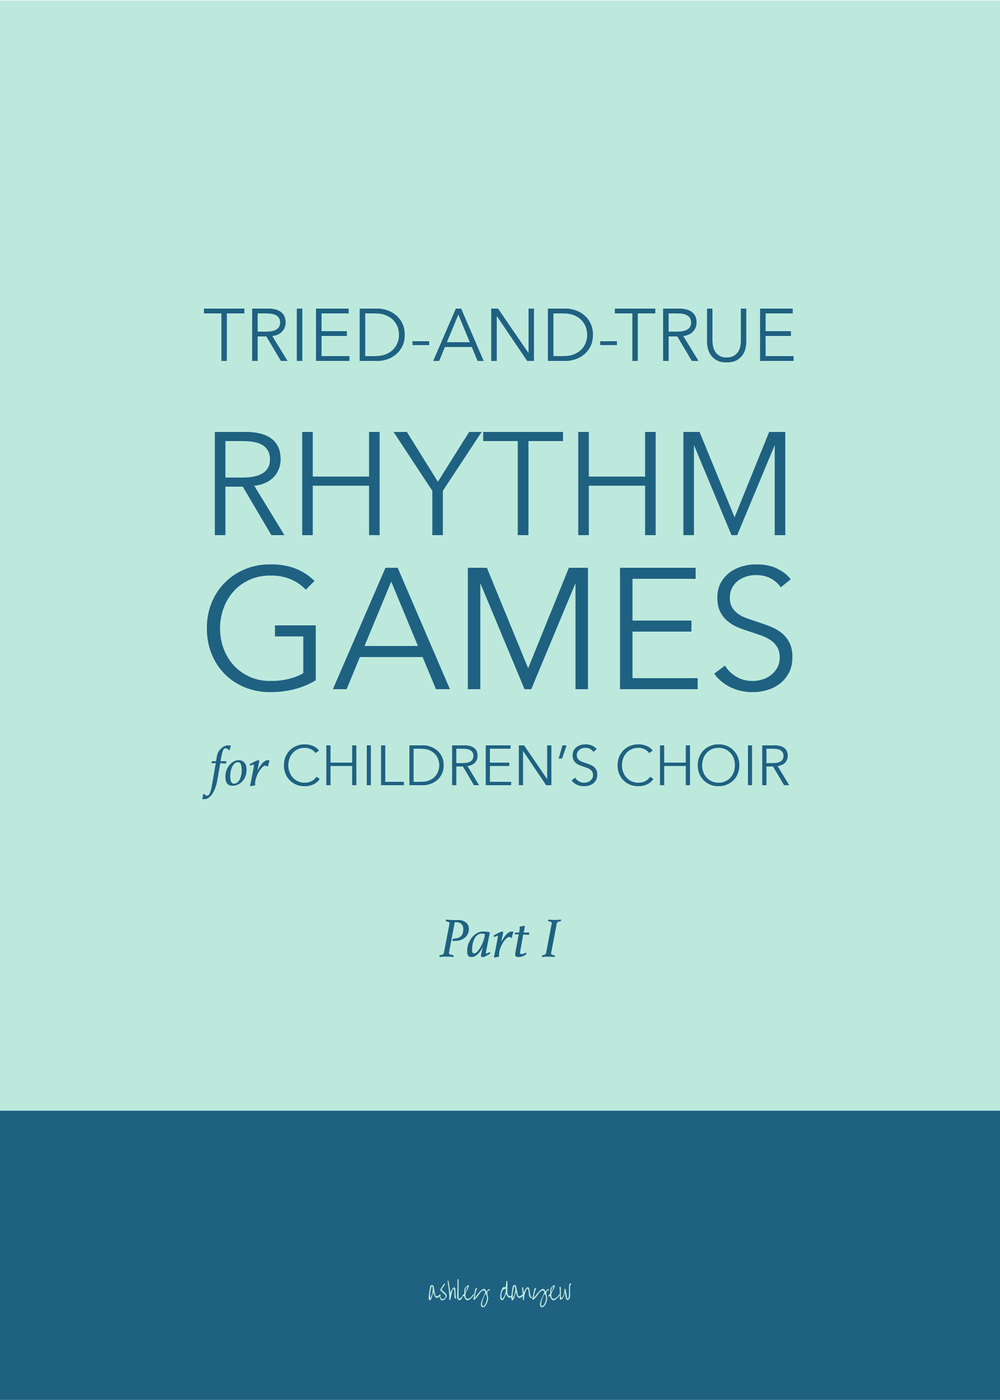 Copy of Tried-and-True Rhythm Games for Children's Choir: Part I